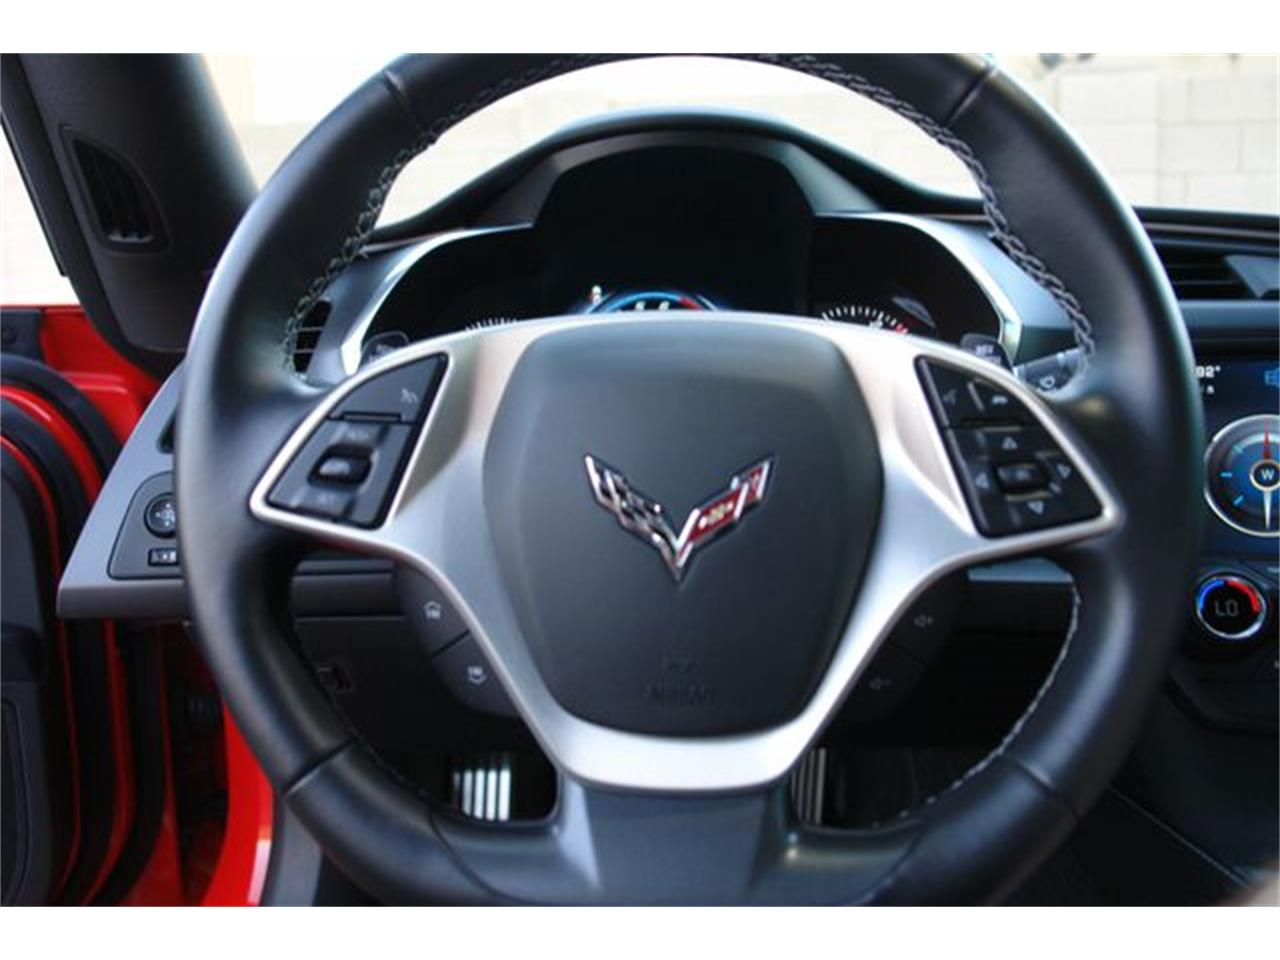 2017 Chevrolet Corvette for sale in Phoenix, AZ – photo 44